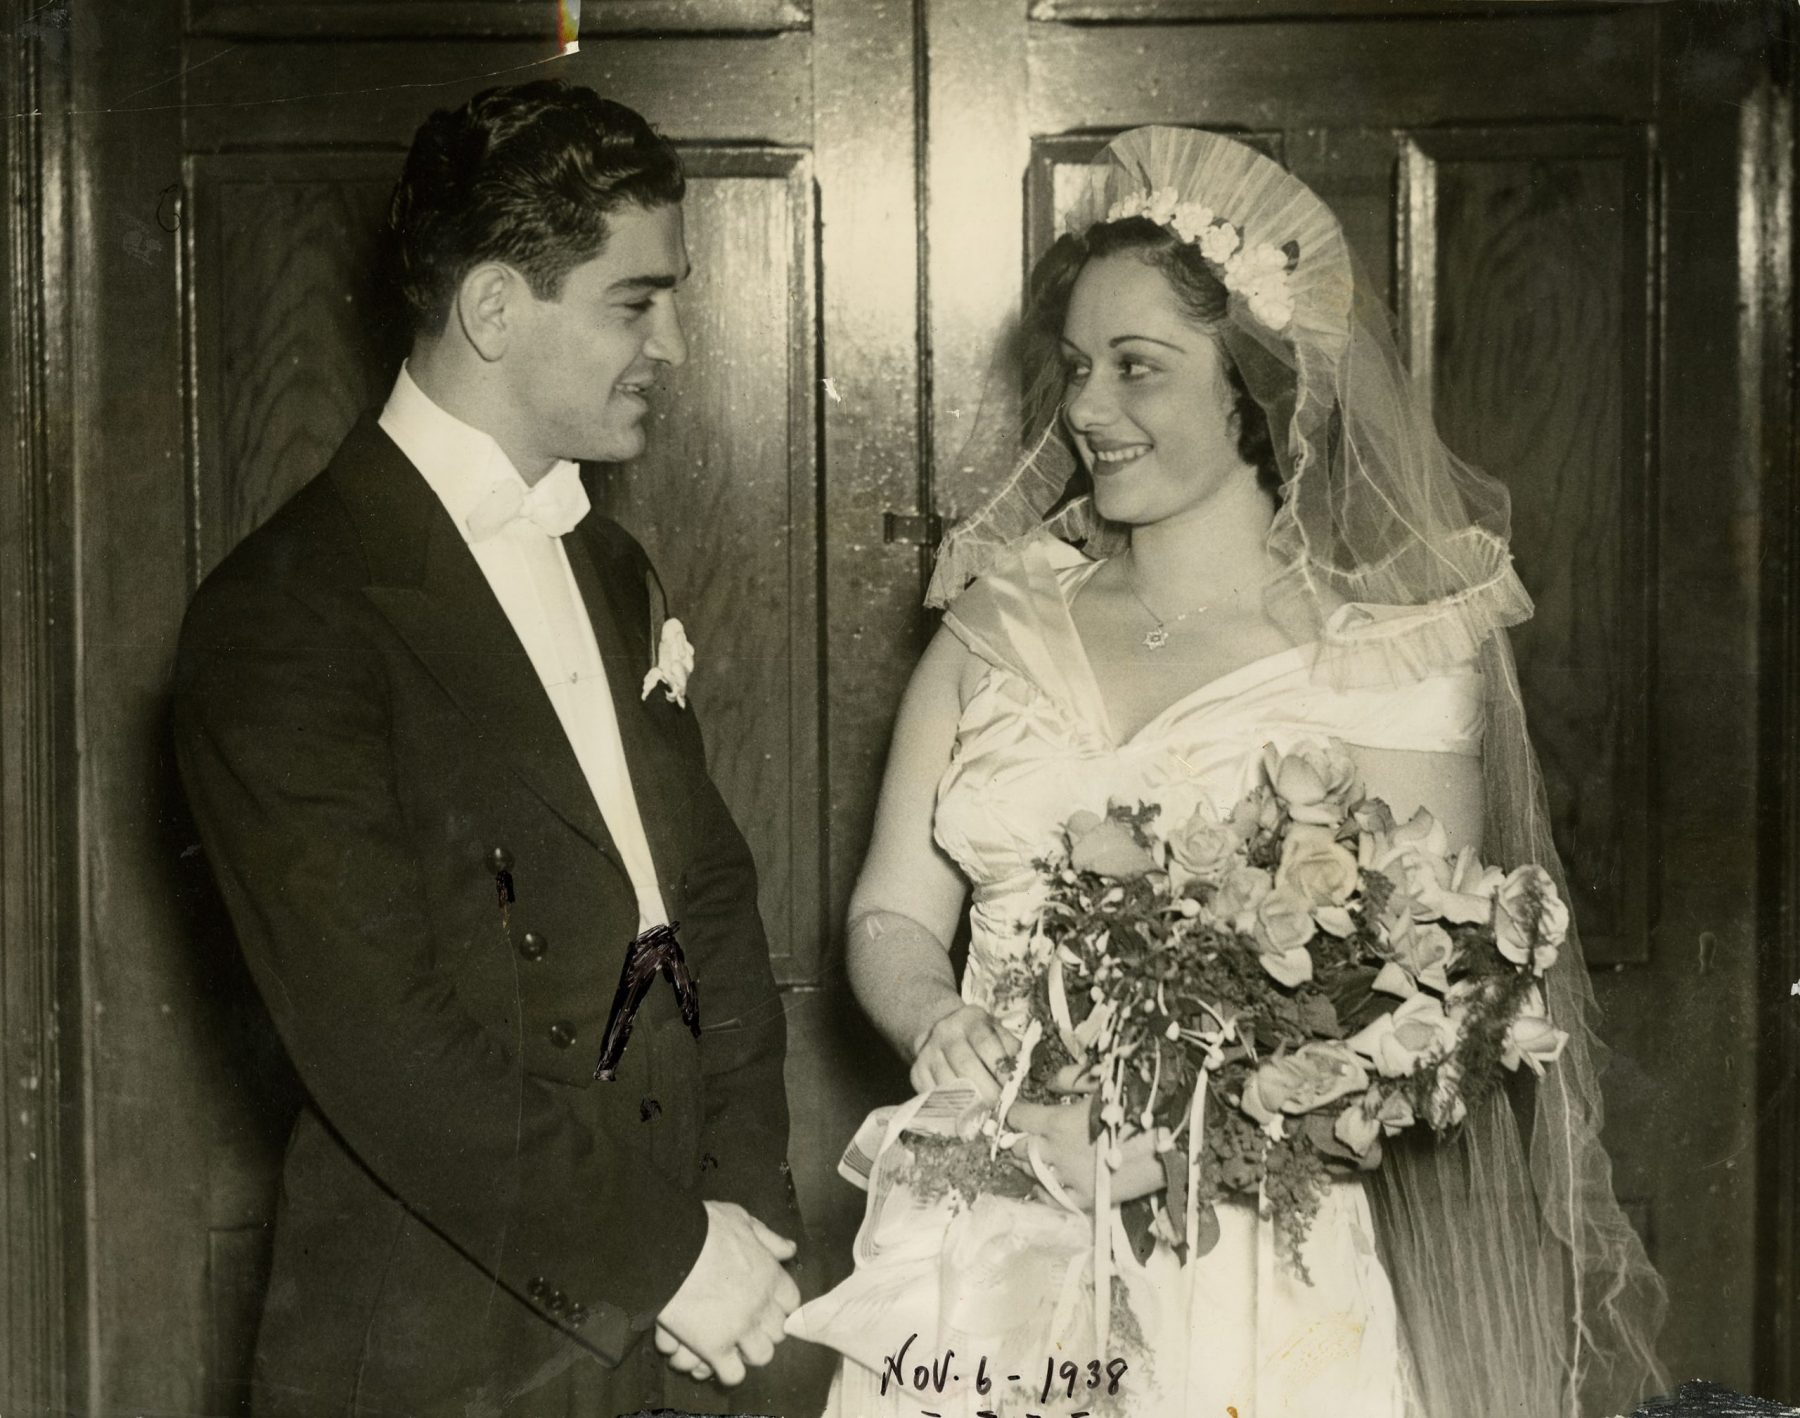 Wedding photograph of Elsie and Sammy Luftspring taken on 6 November 1938 at the McCaul Street Synagogue (Beth Hamidrash Hagadol). Three-hundred-and-fifty people attended his wedding, and hundreds waited outside of the synagogue to see the newlyweds.   OJA, fonds 82, item 20.